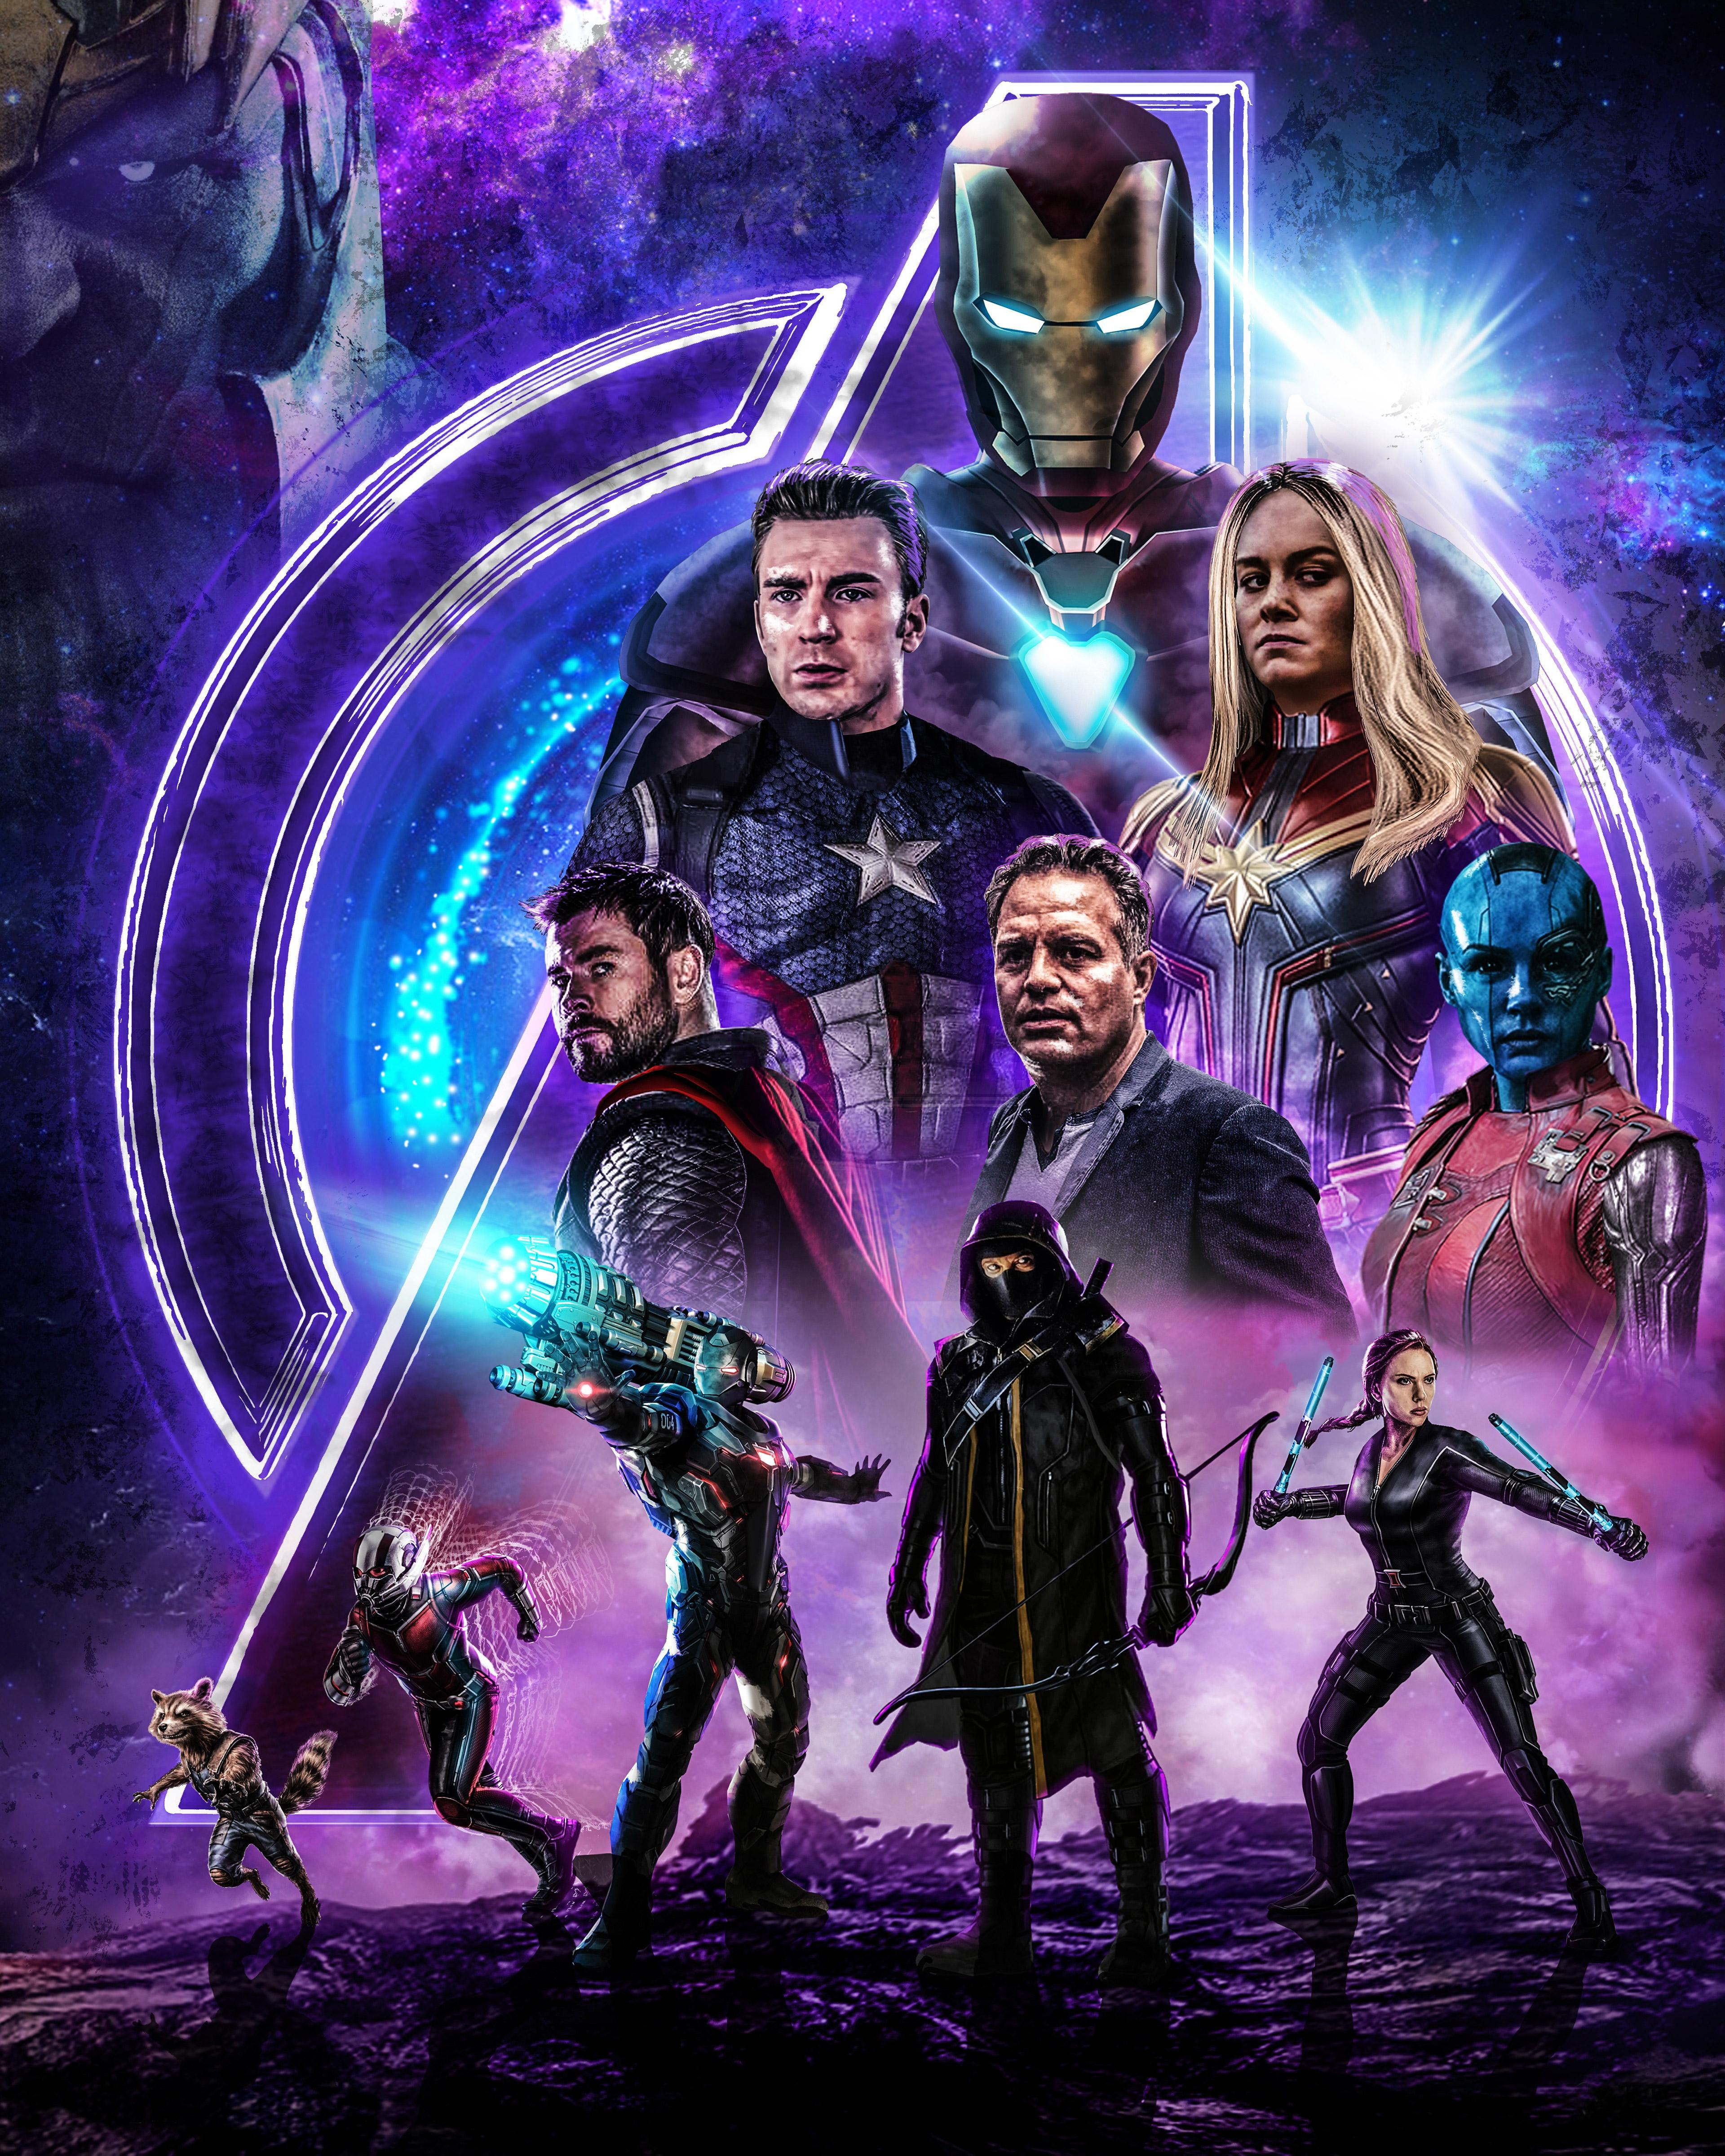 Avengers Endgame Ultra HD Android Wallpapers - Wallpaper Cave